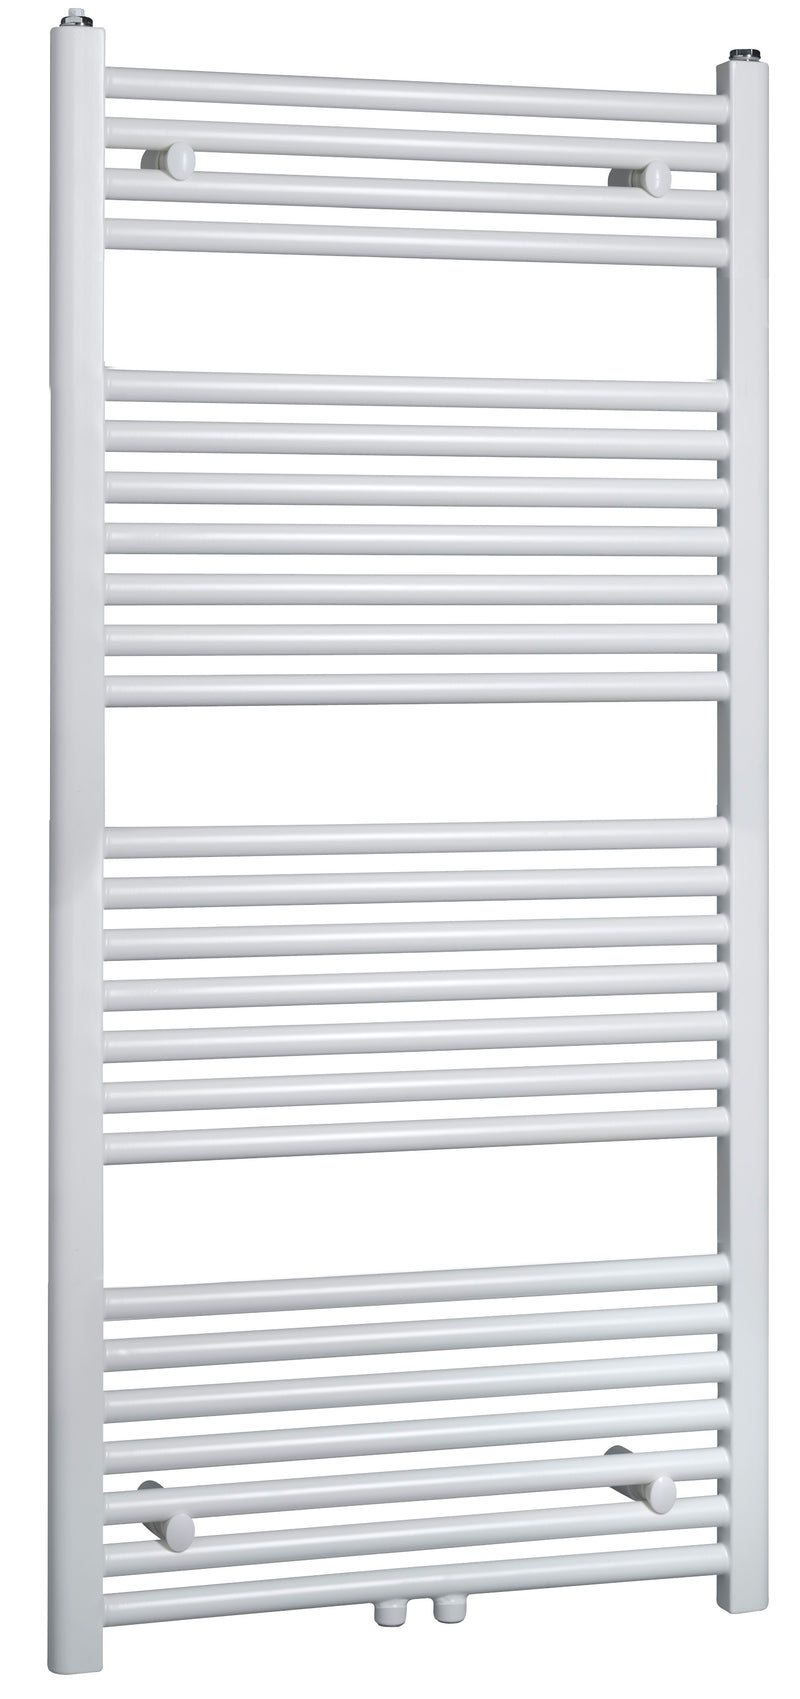 Best-Design Zero radiator  recht model 1200x600mm